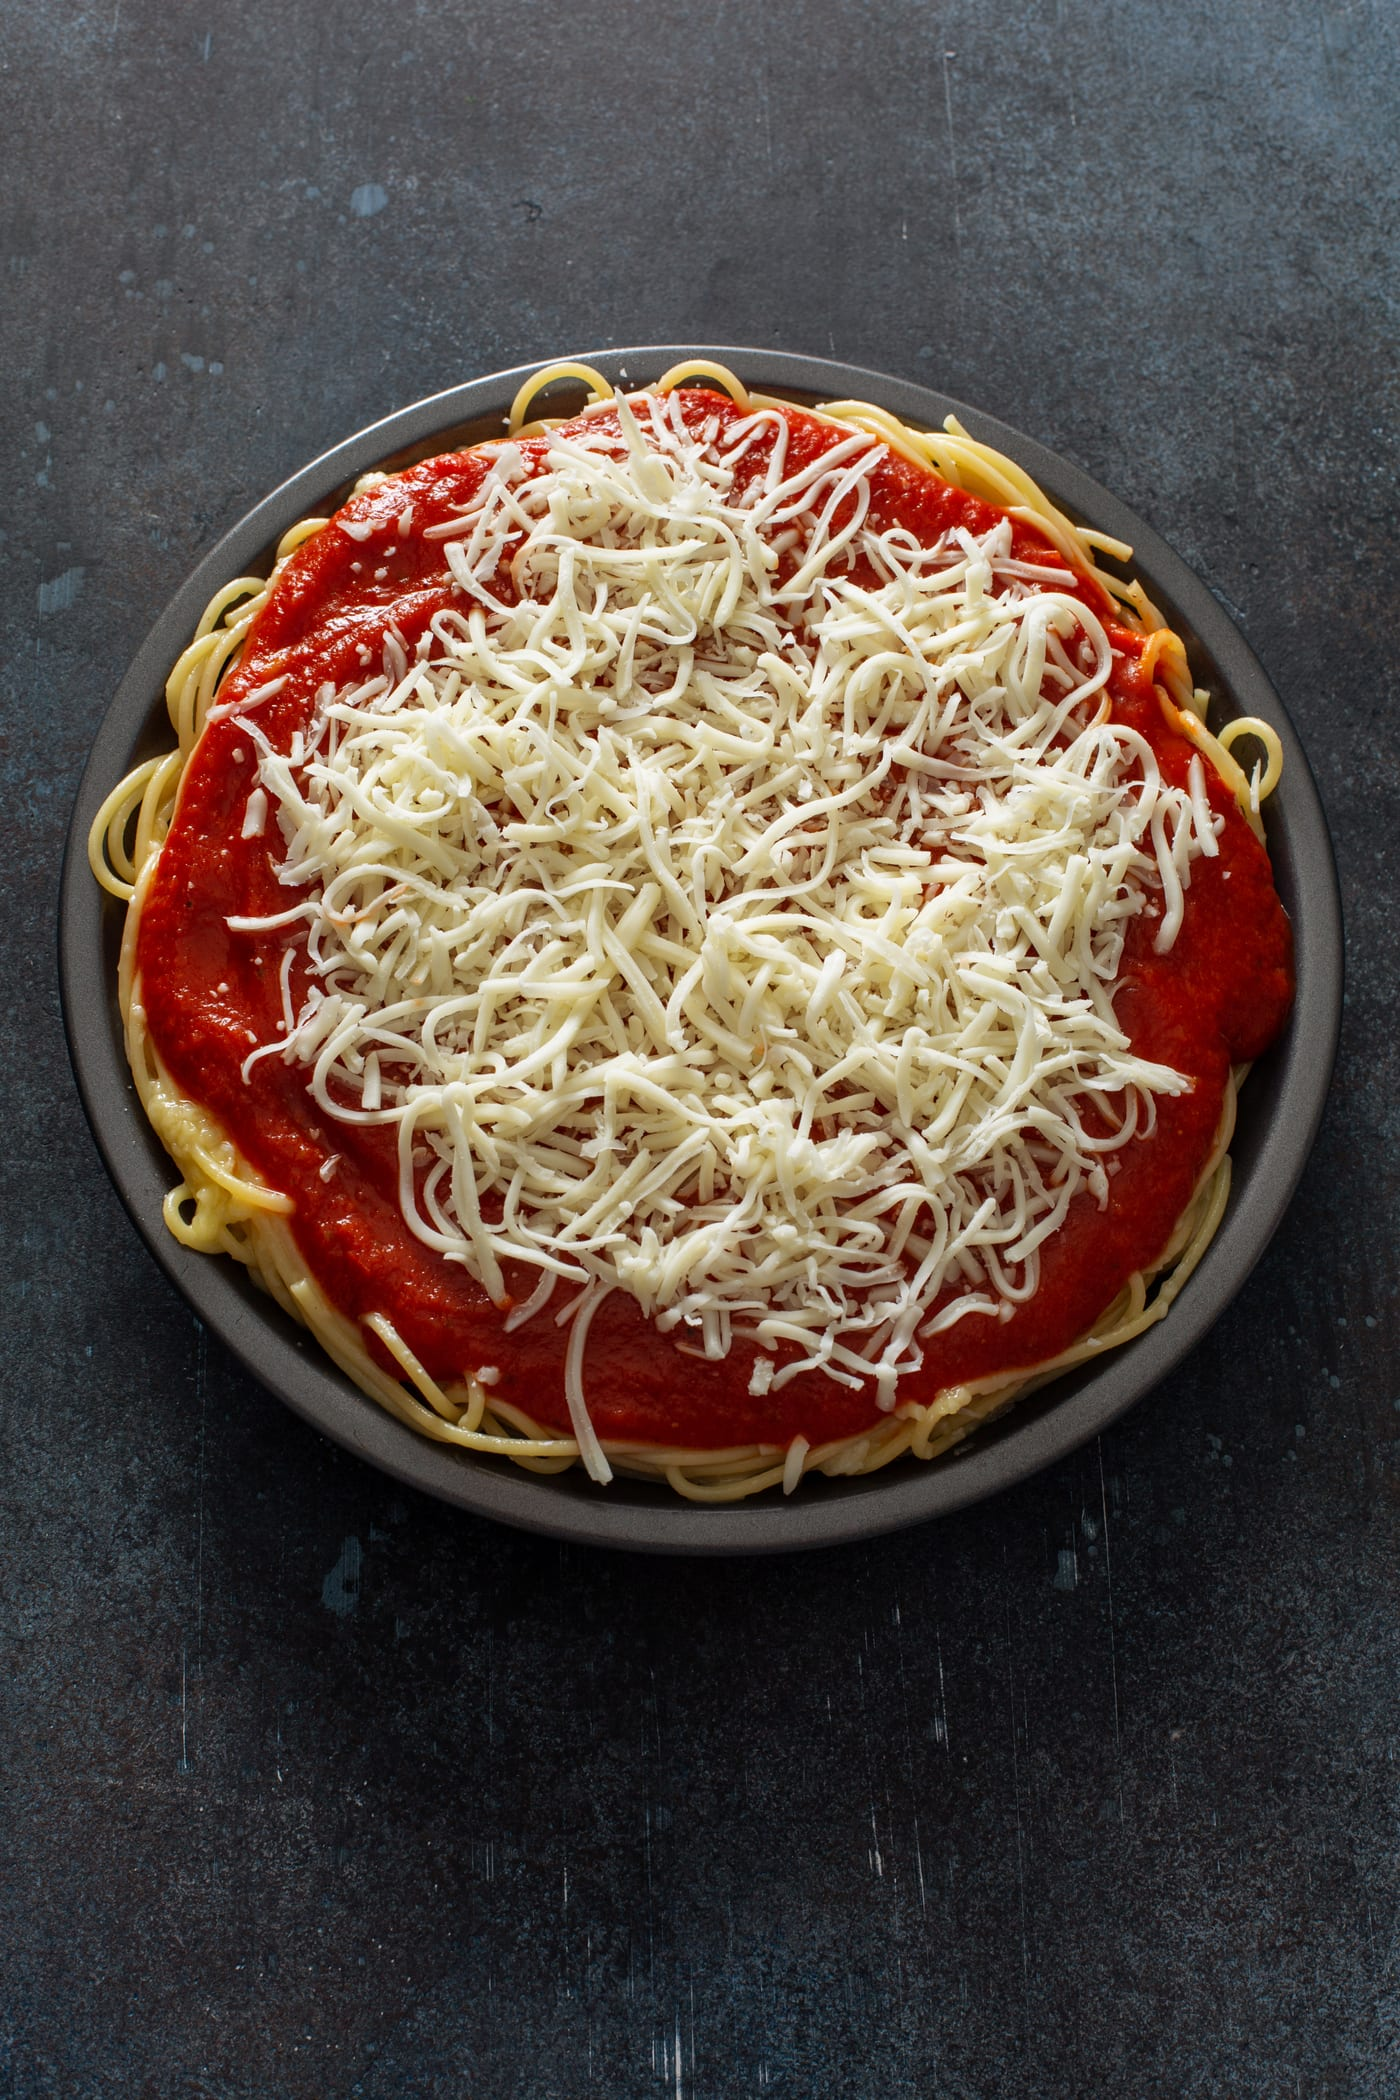 A pie dish filled with cooked spaghetti, topped with spaghetti sauce and shredded cheeses.